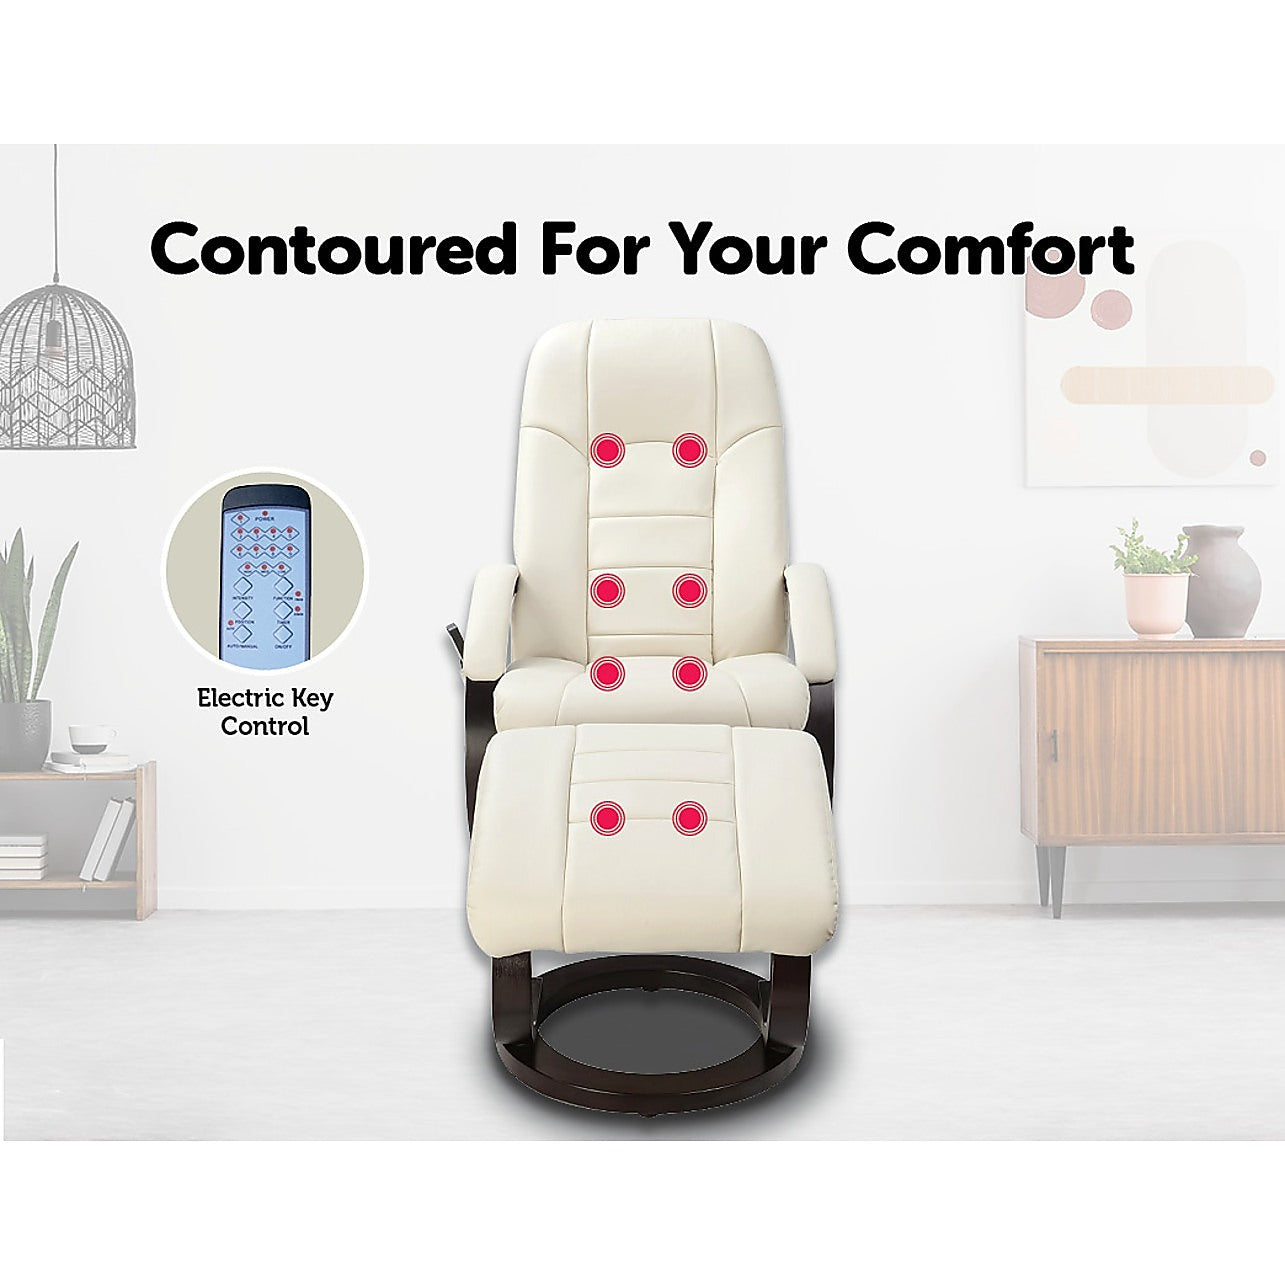 Groovy Pu Leather Deluxe Massage Chair Recliner Ottoman Lounge Remote Pdpeps Interior Chair Design Pdpepsorg